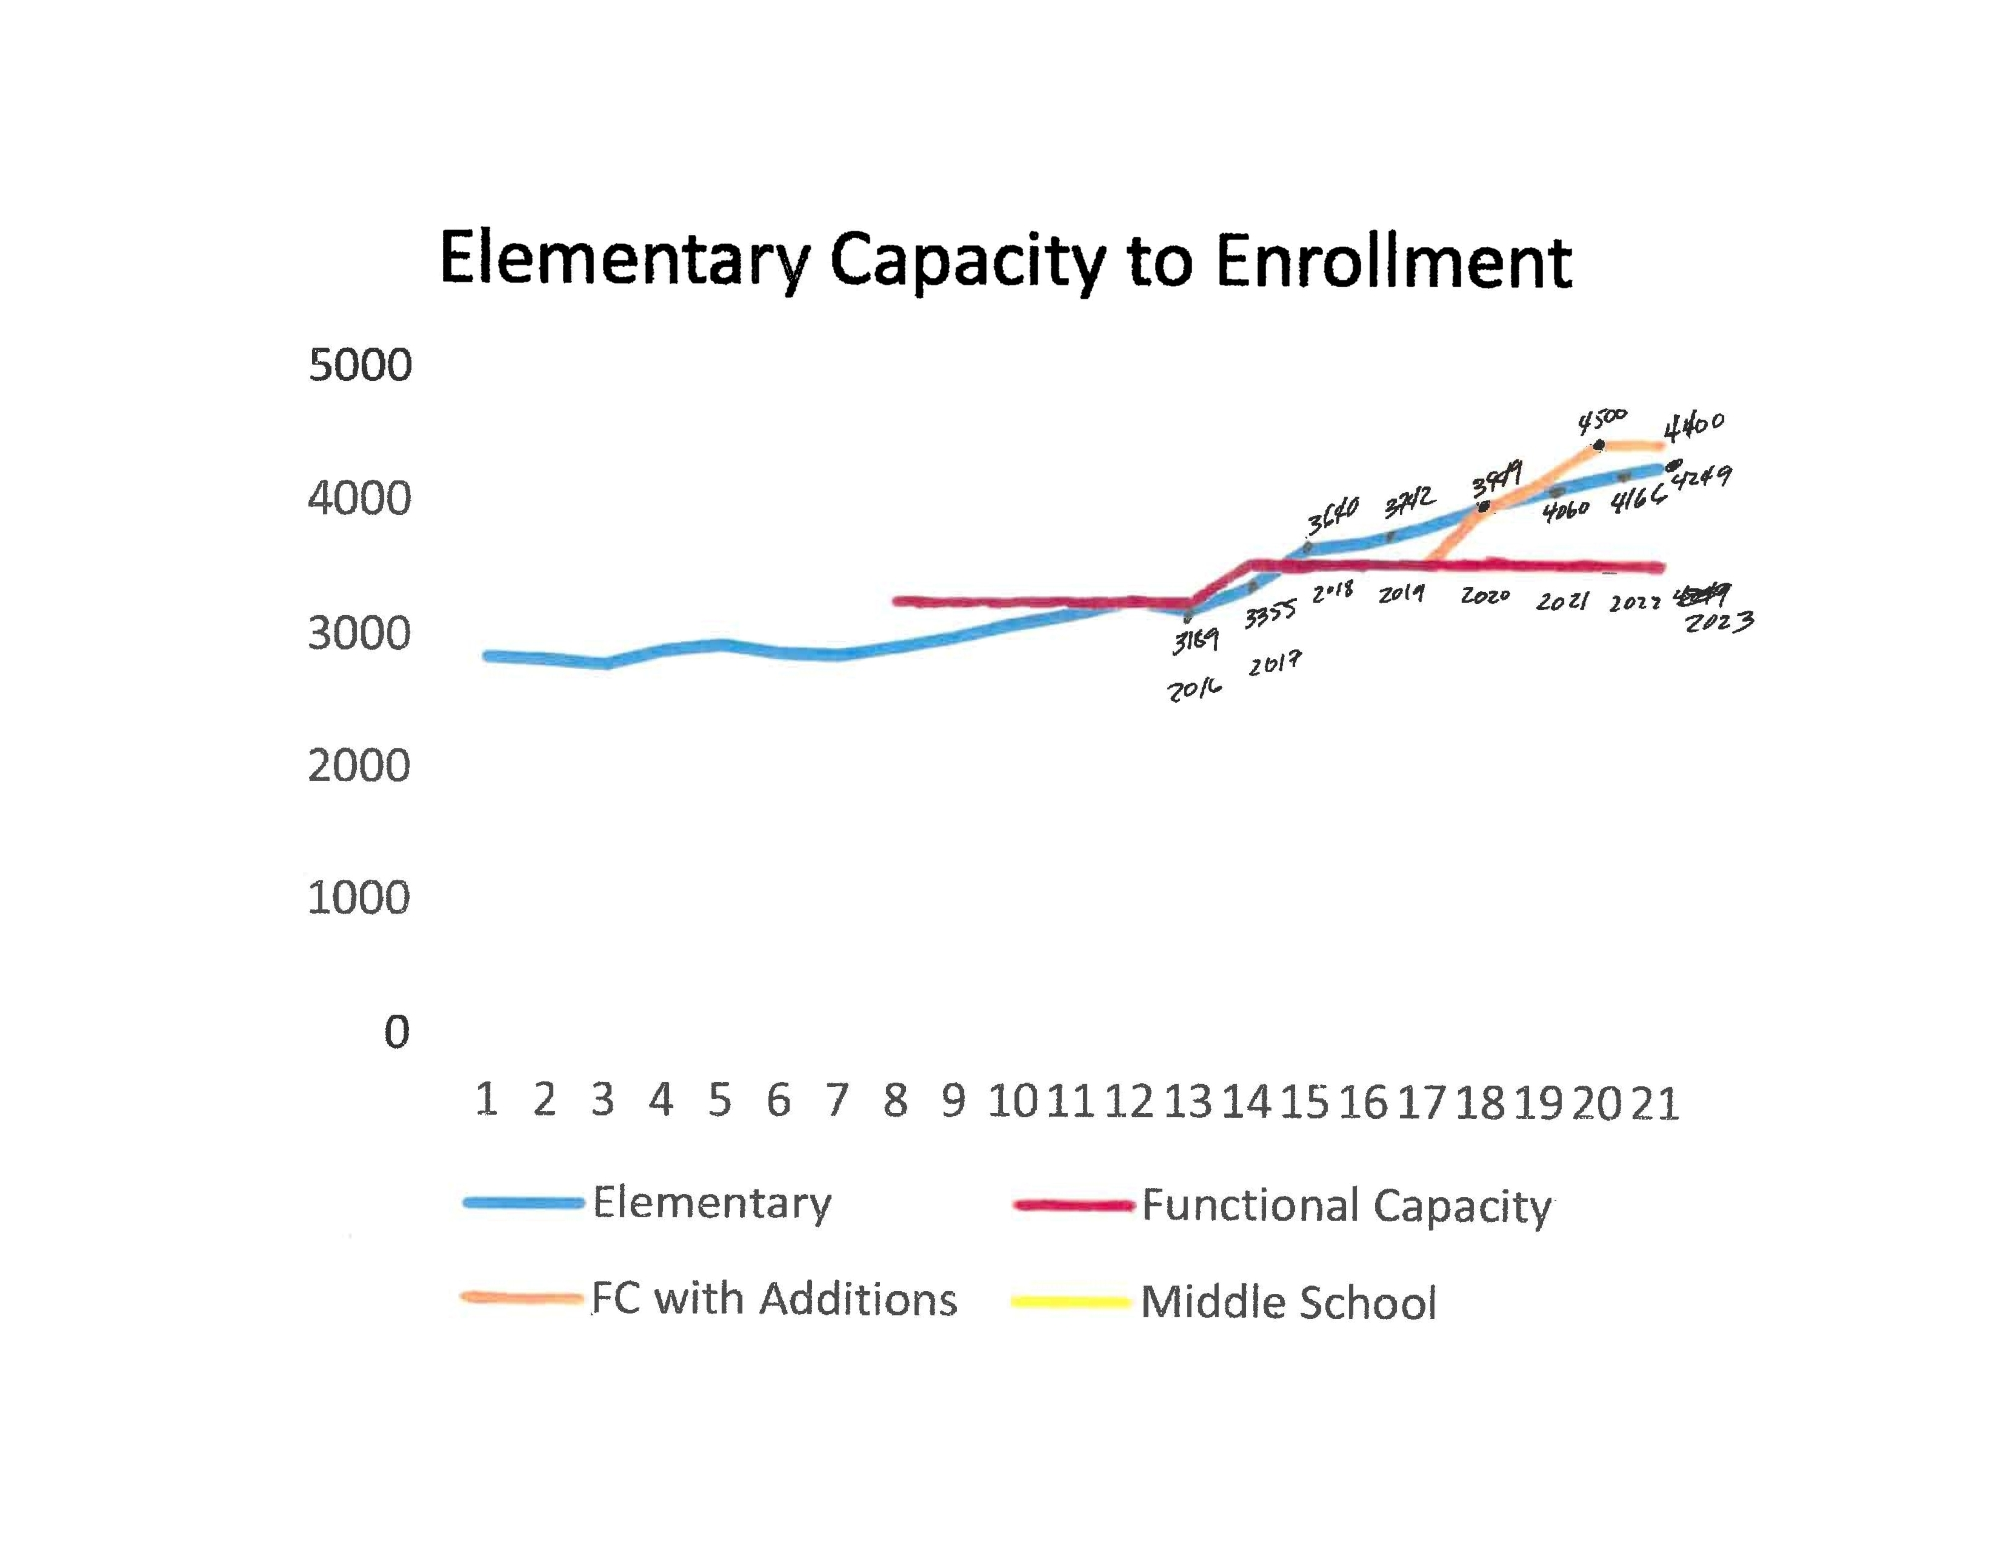 Elementary Capacity to Enrollment